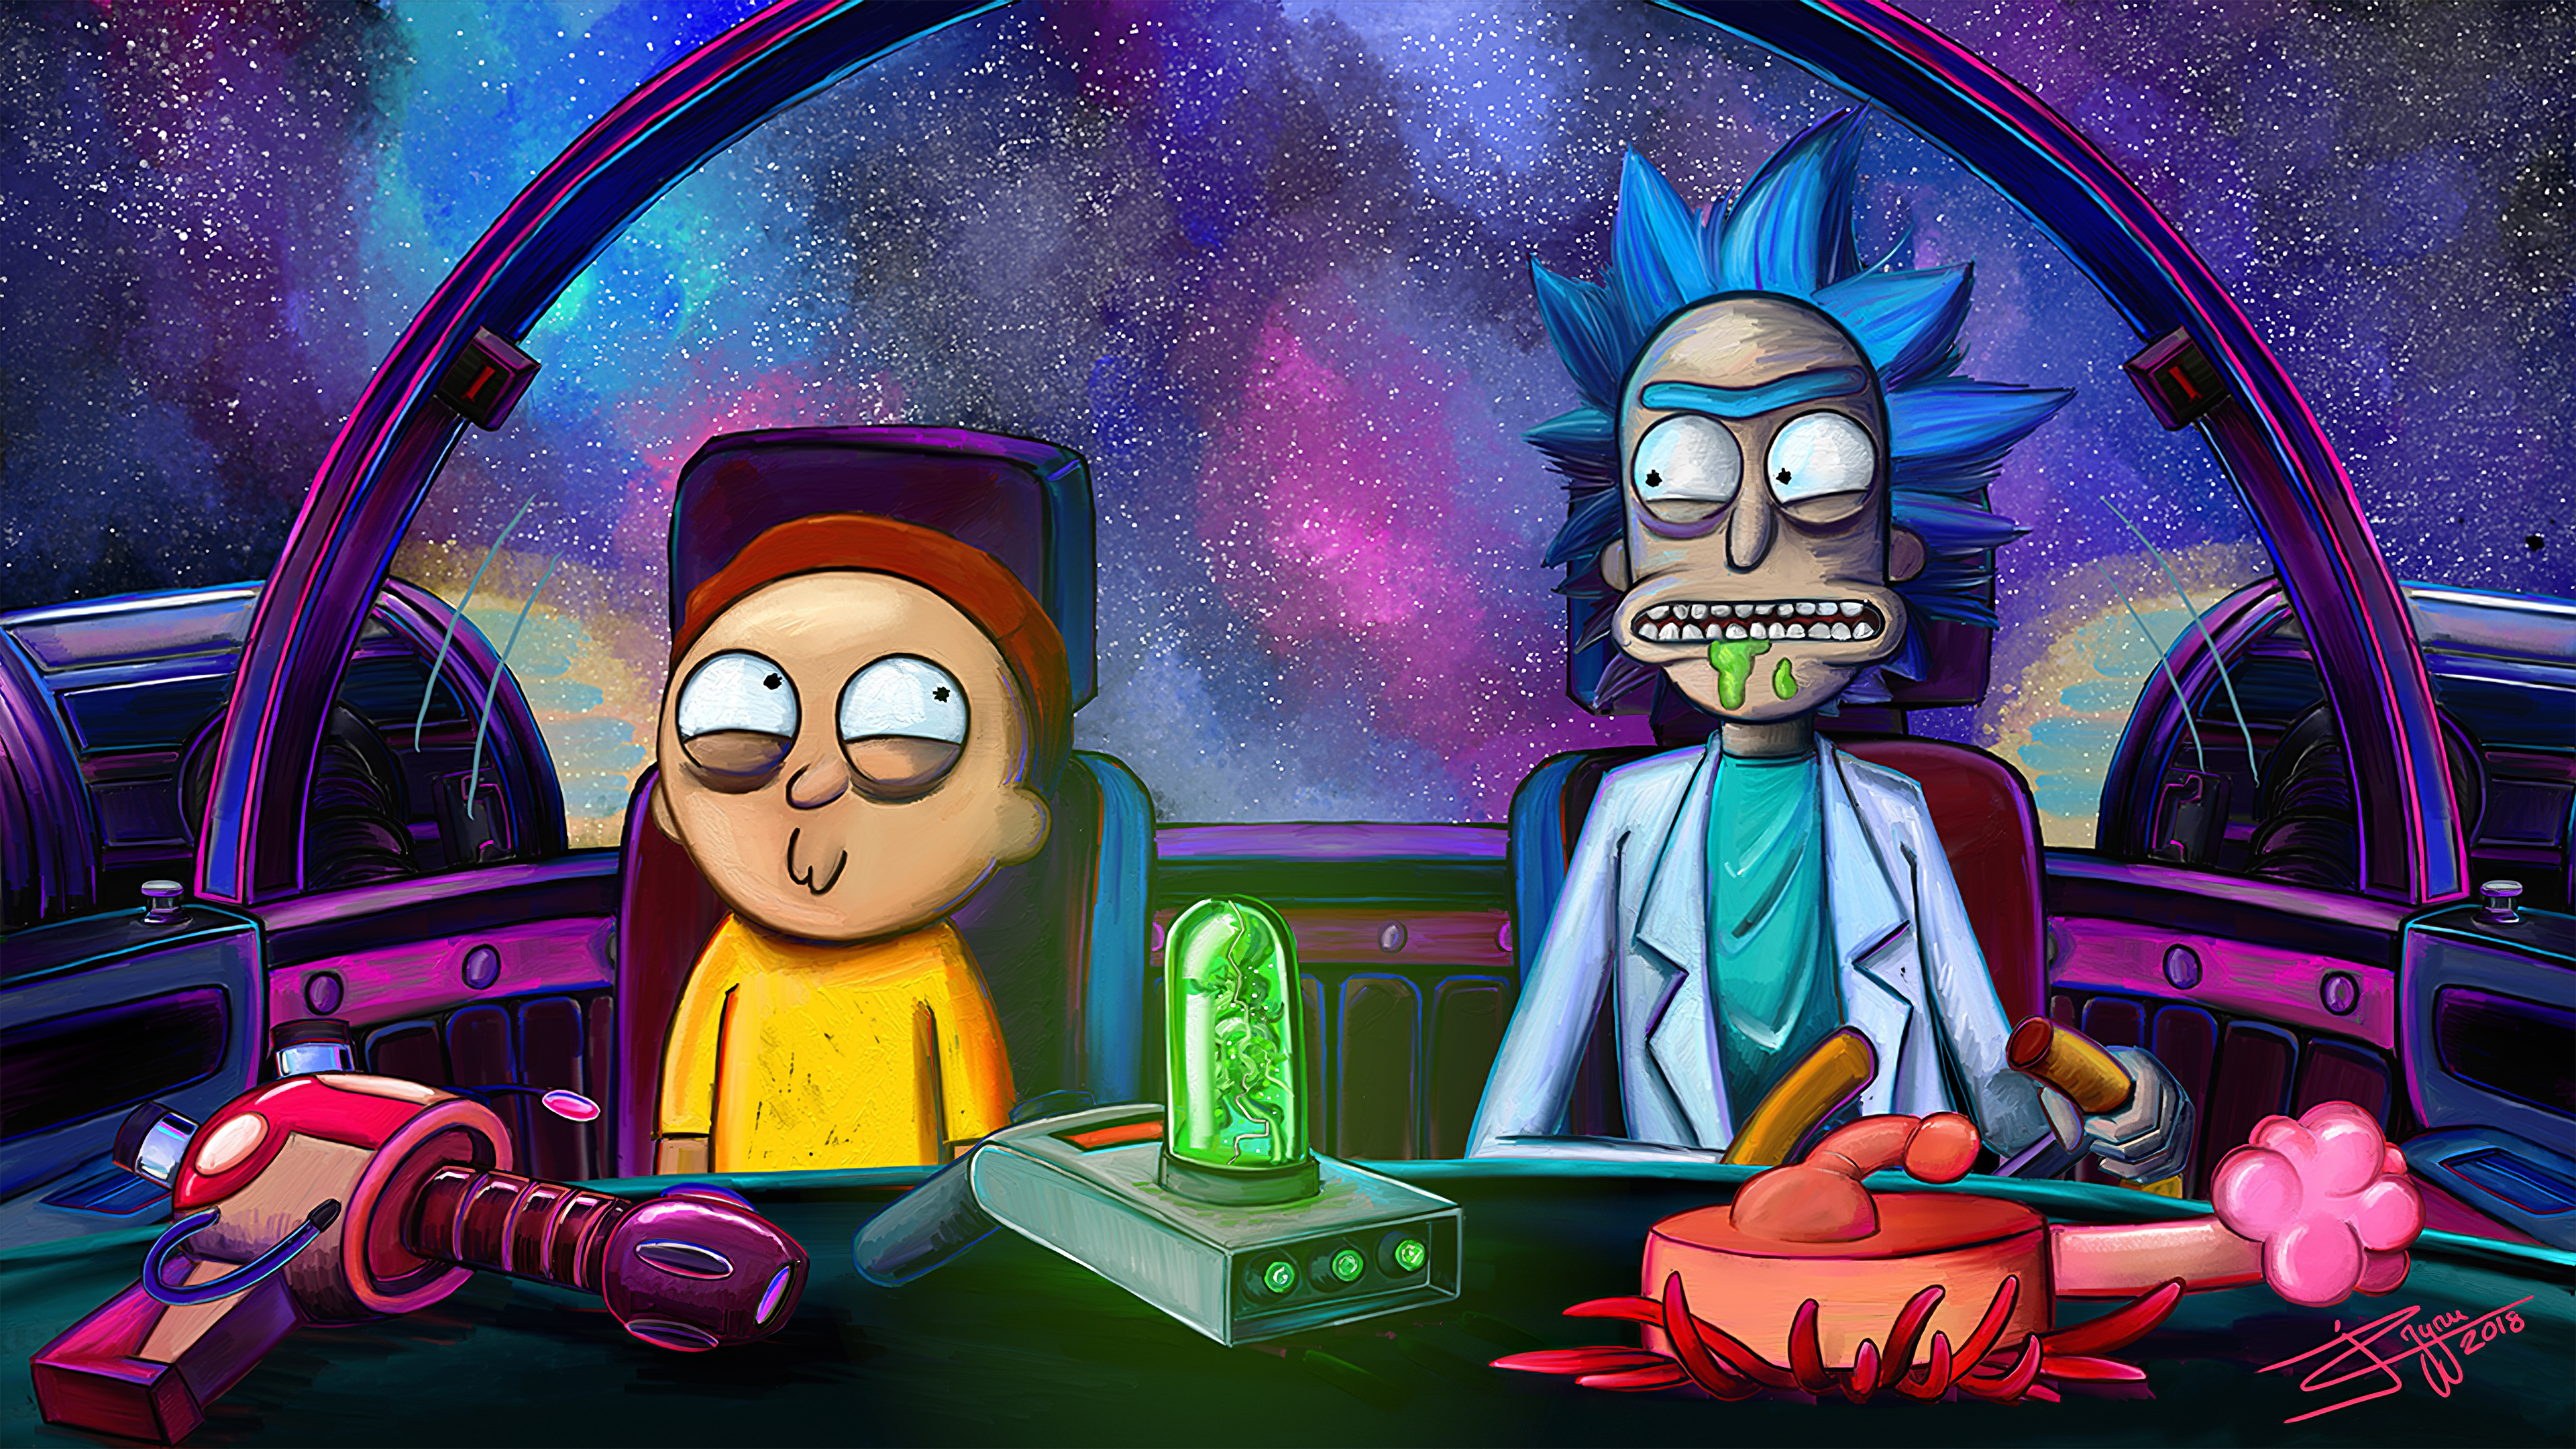 Rick And Morty Netflix 2020 Hd Tv Shows 4k Wallpapers Images